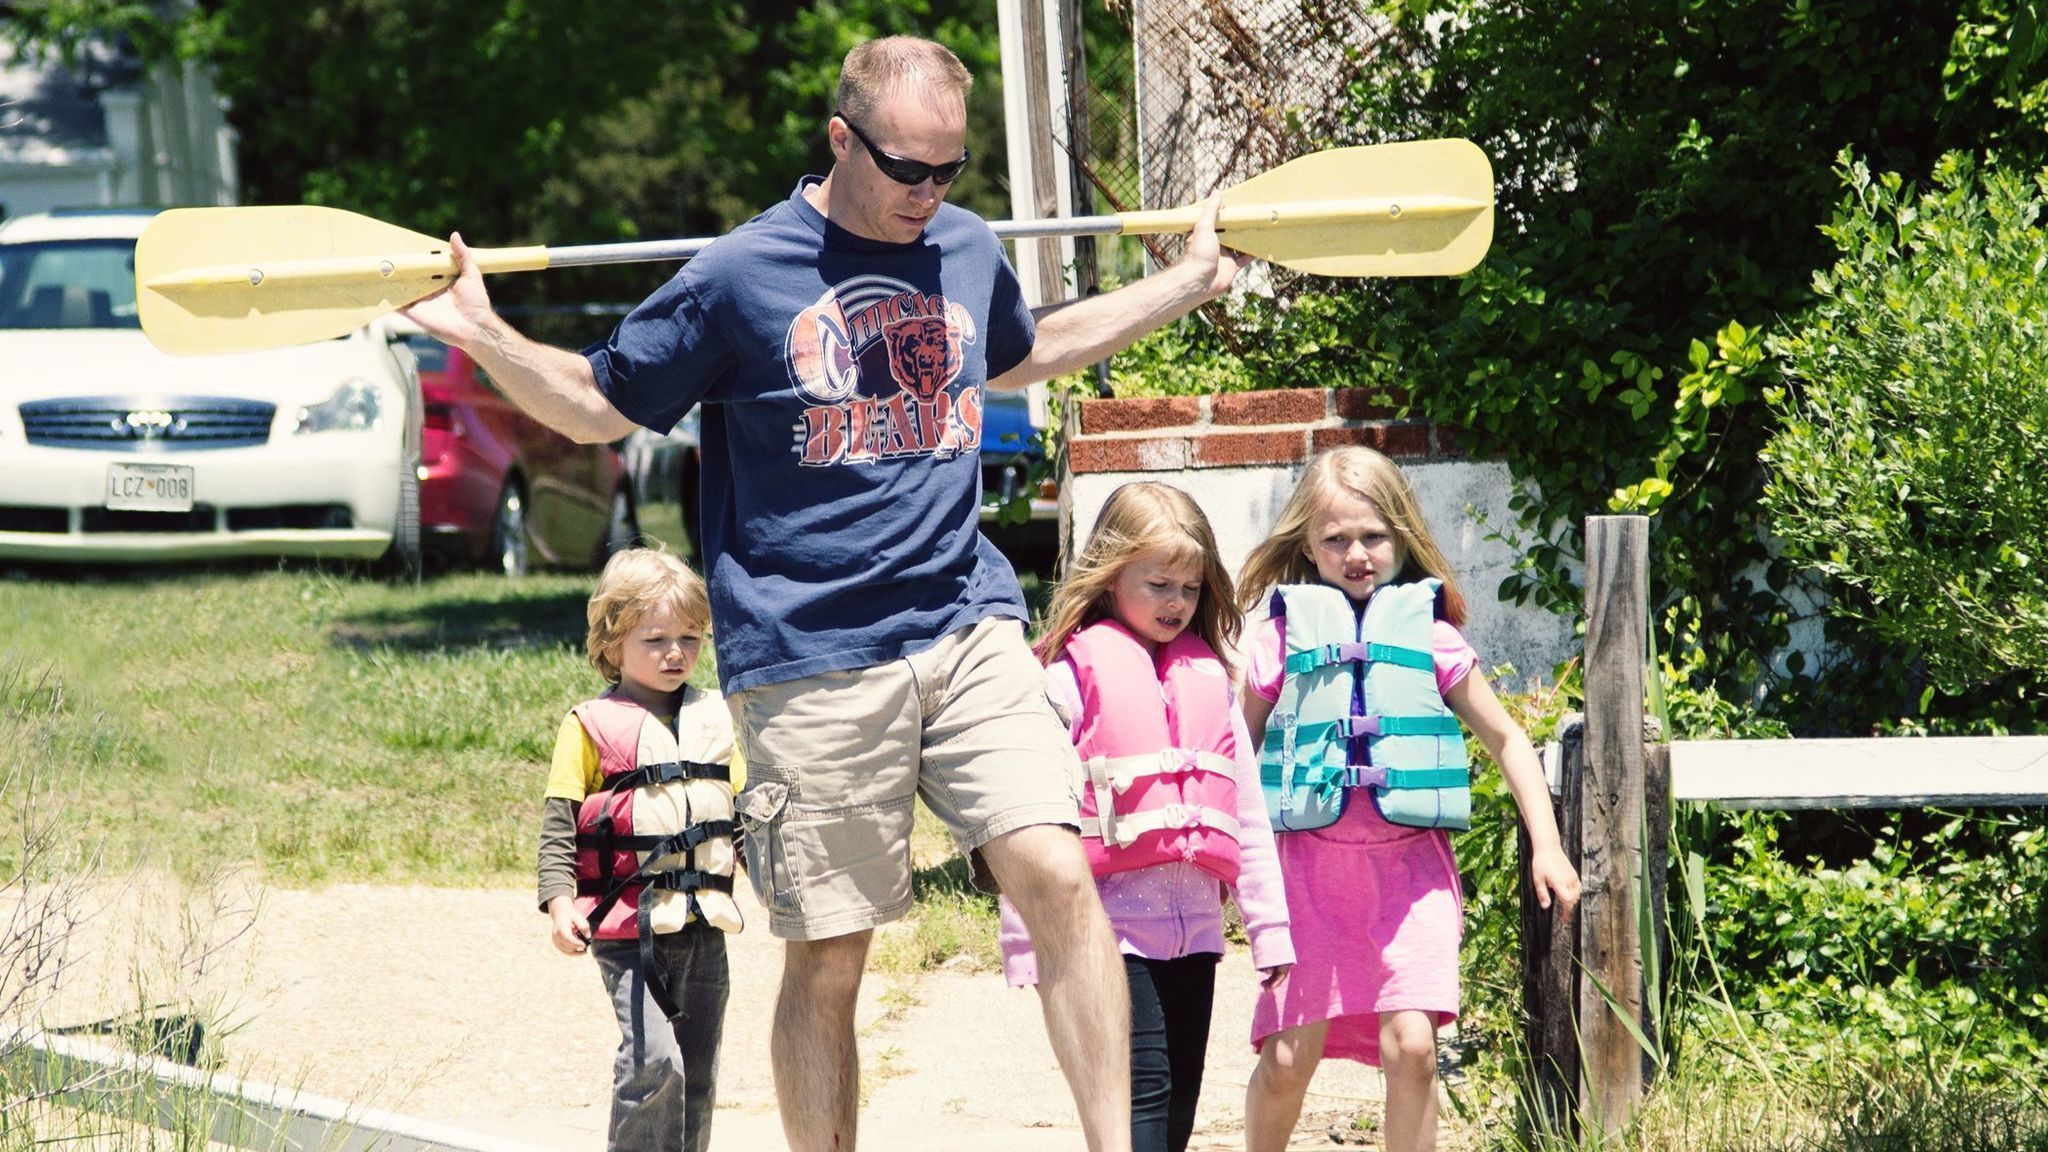 ad4a53b4 Maryland summer camps make affordable family reunion venues in the  off-season - Baltimore Sun